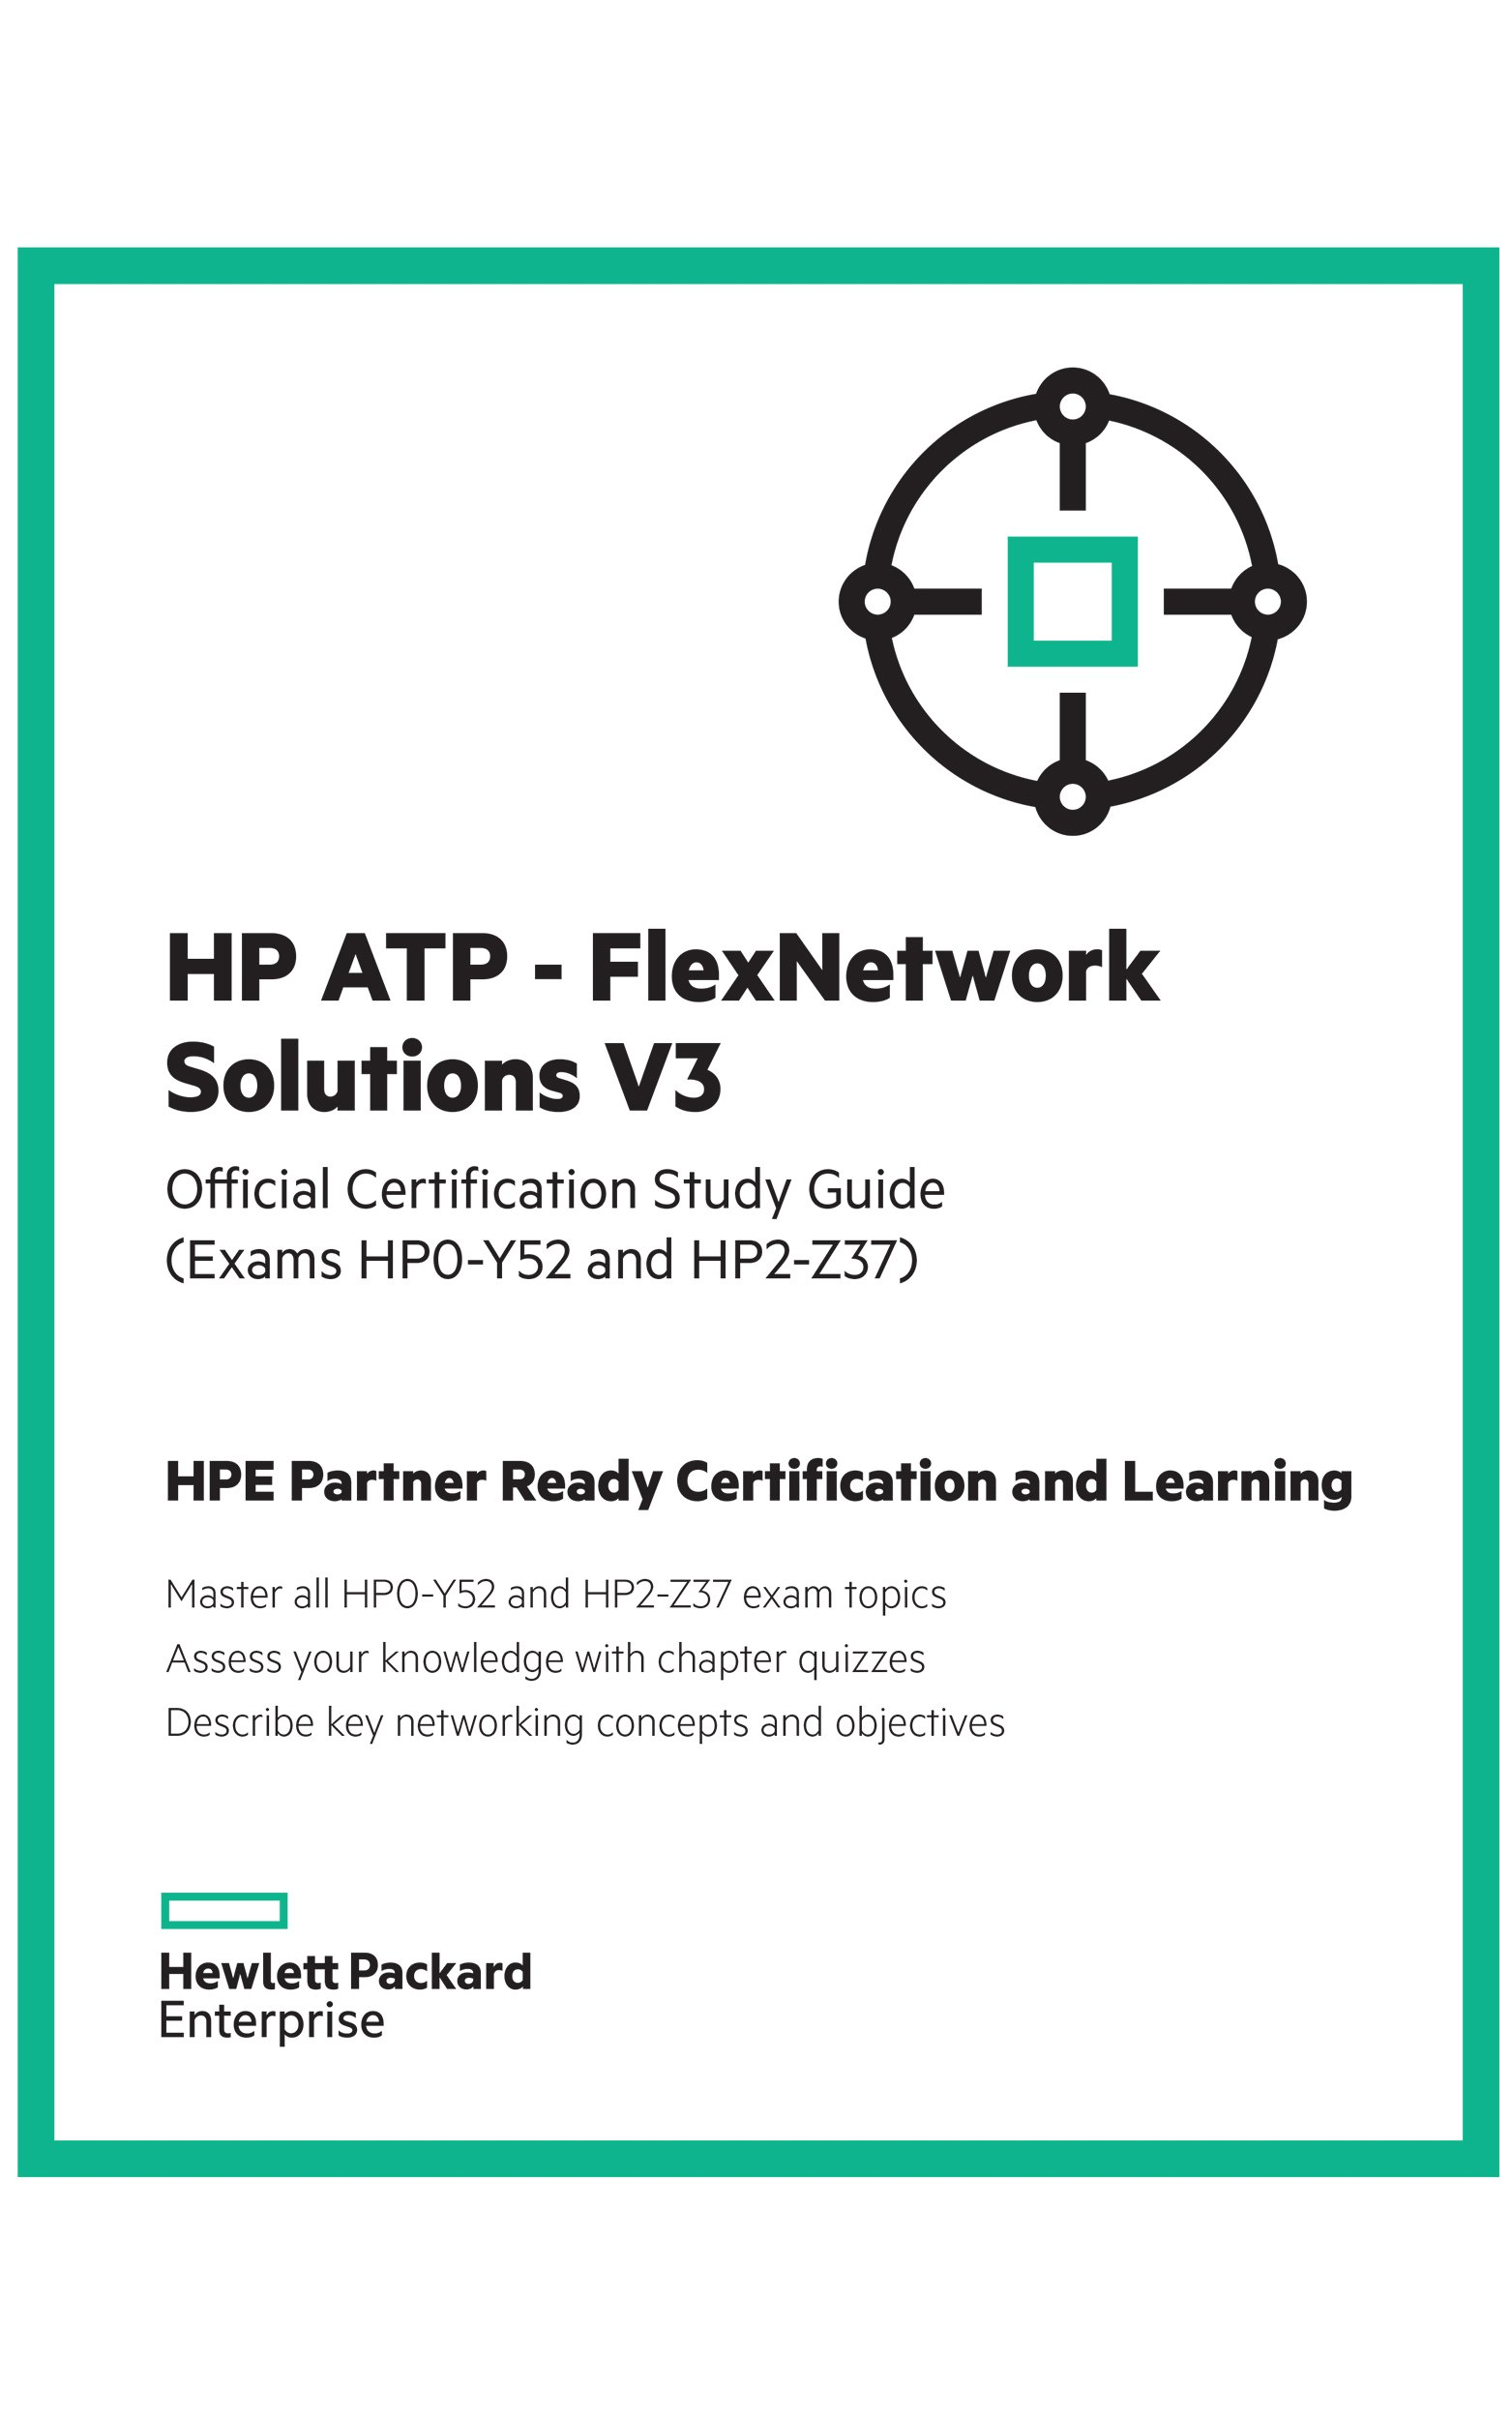 Hp Atp Flexnetwork Solutions V3 Official Certification Study Guide